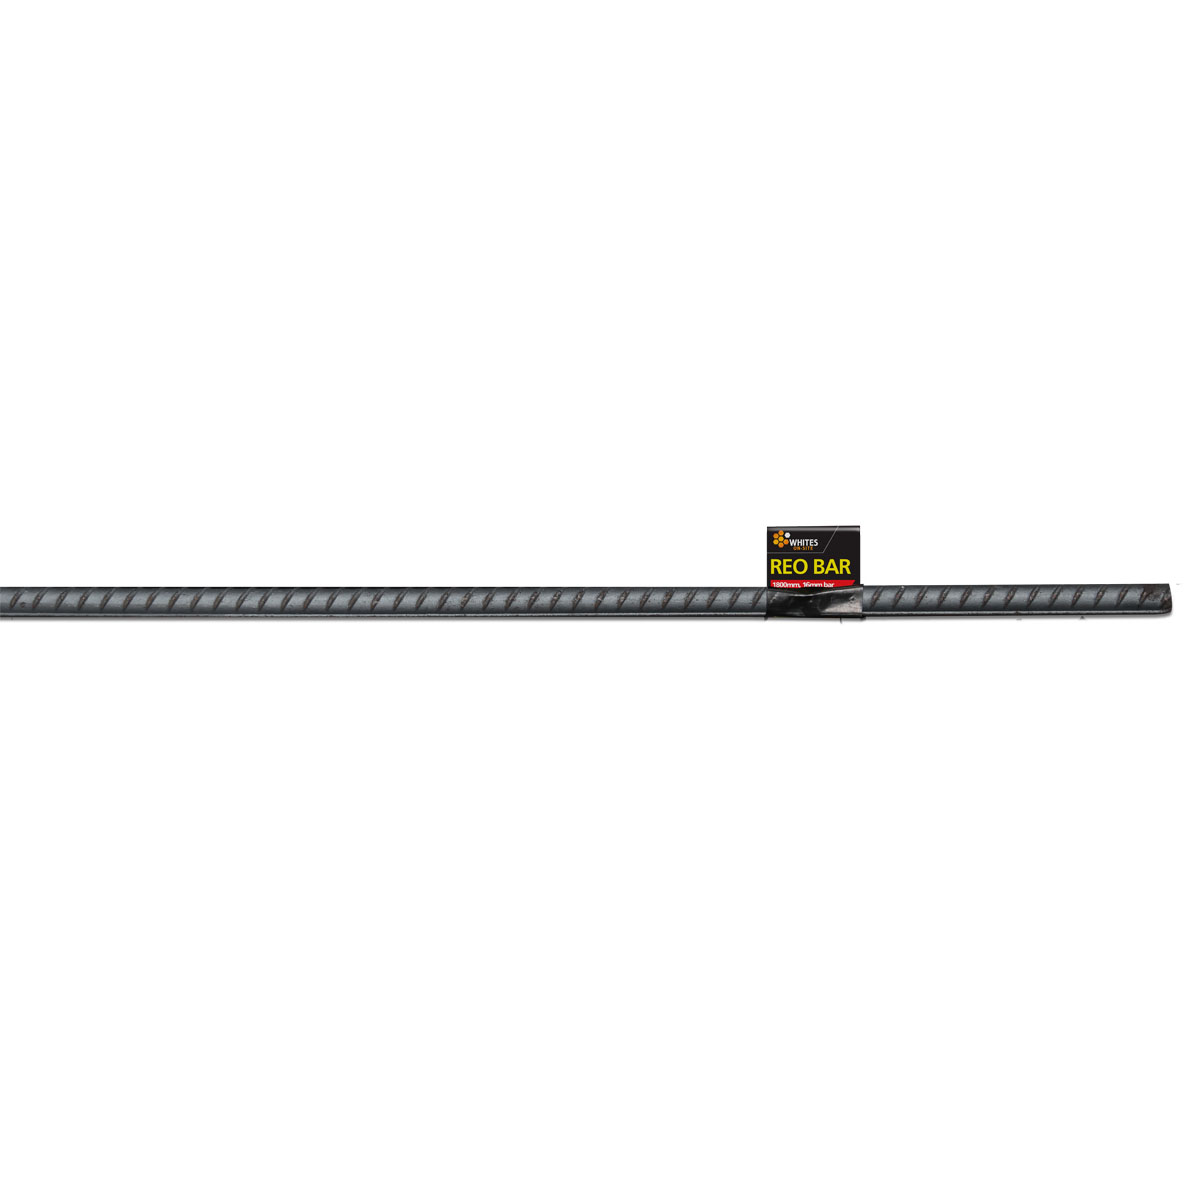 71675 - reo bars 1800mm - 16mm